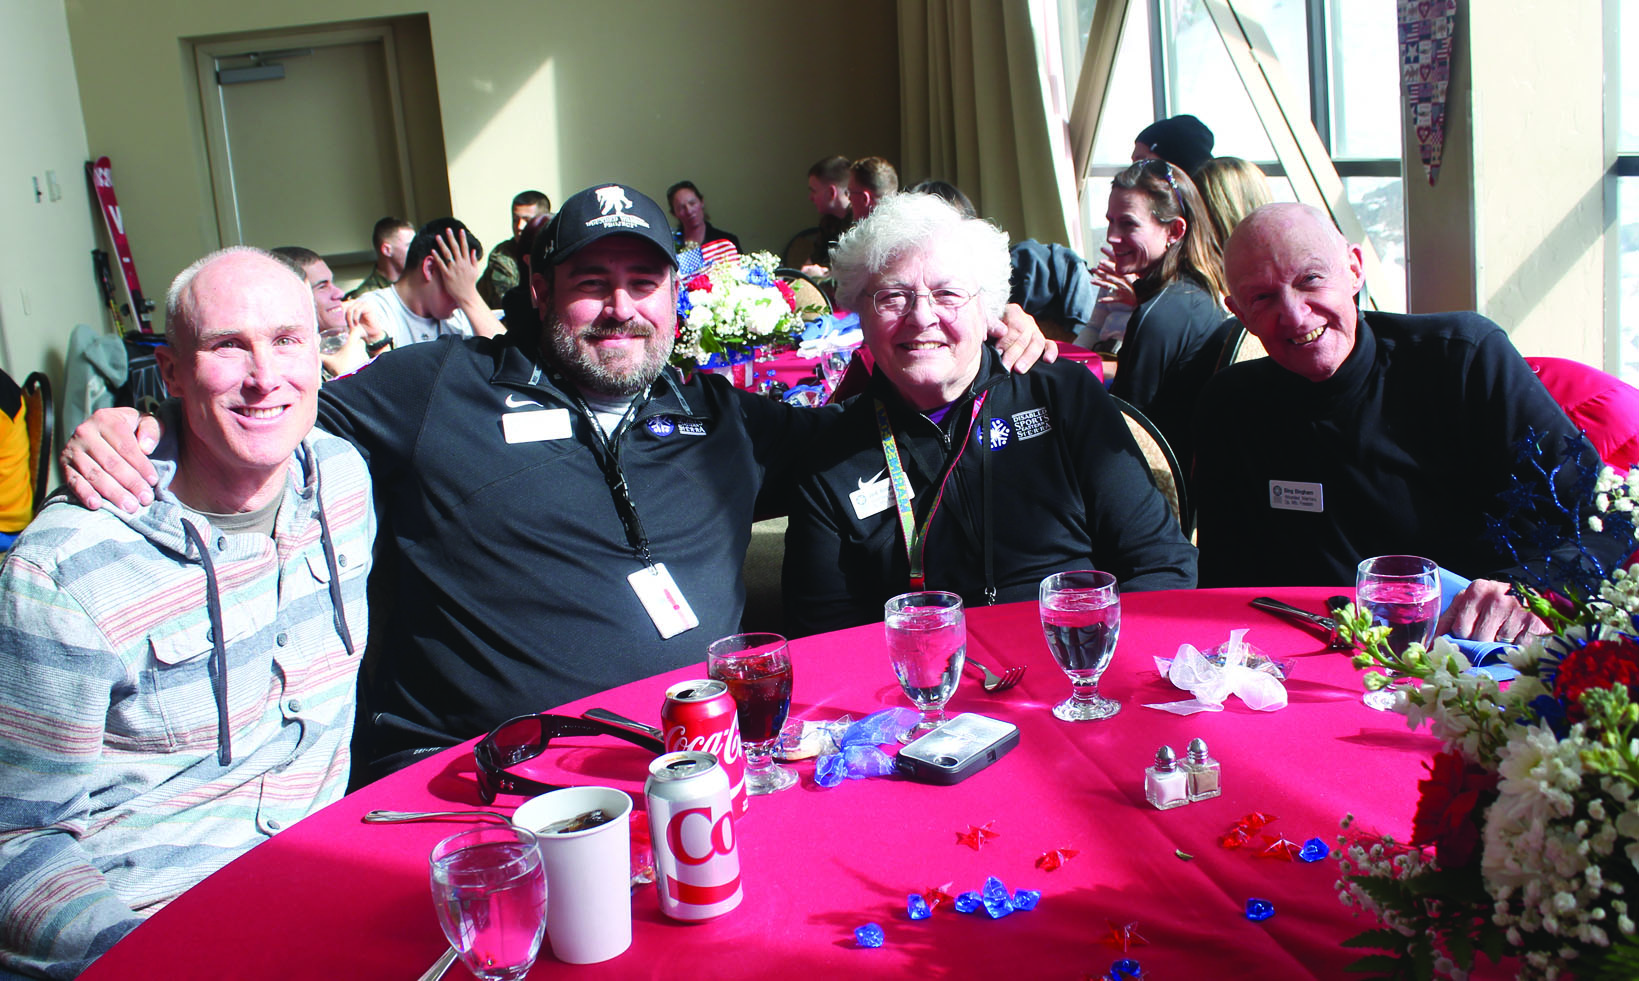 40 Wounded Warriors along with families and guests were in town this past week for Disabled Sports Eastern Sierra's Operation Mountain Freedom event. At Thursday's luncheon were, from left, Ed Hurley, Owner of Burgers, Mike Murphy, a veteran from Rialto, Jodi Bingham and Korean War vet Bing Bingham of Gardnerville. At the luncheon, the Marine Officers Basic Class 6-67 made a donation of $20,000 towards the National Wounded Warrior Center planned for Mammoth Lakes.